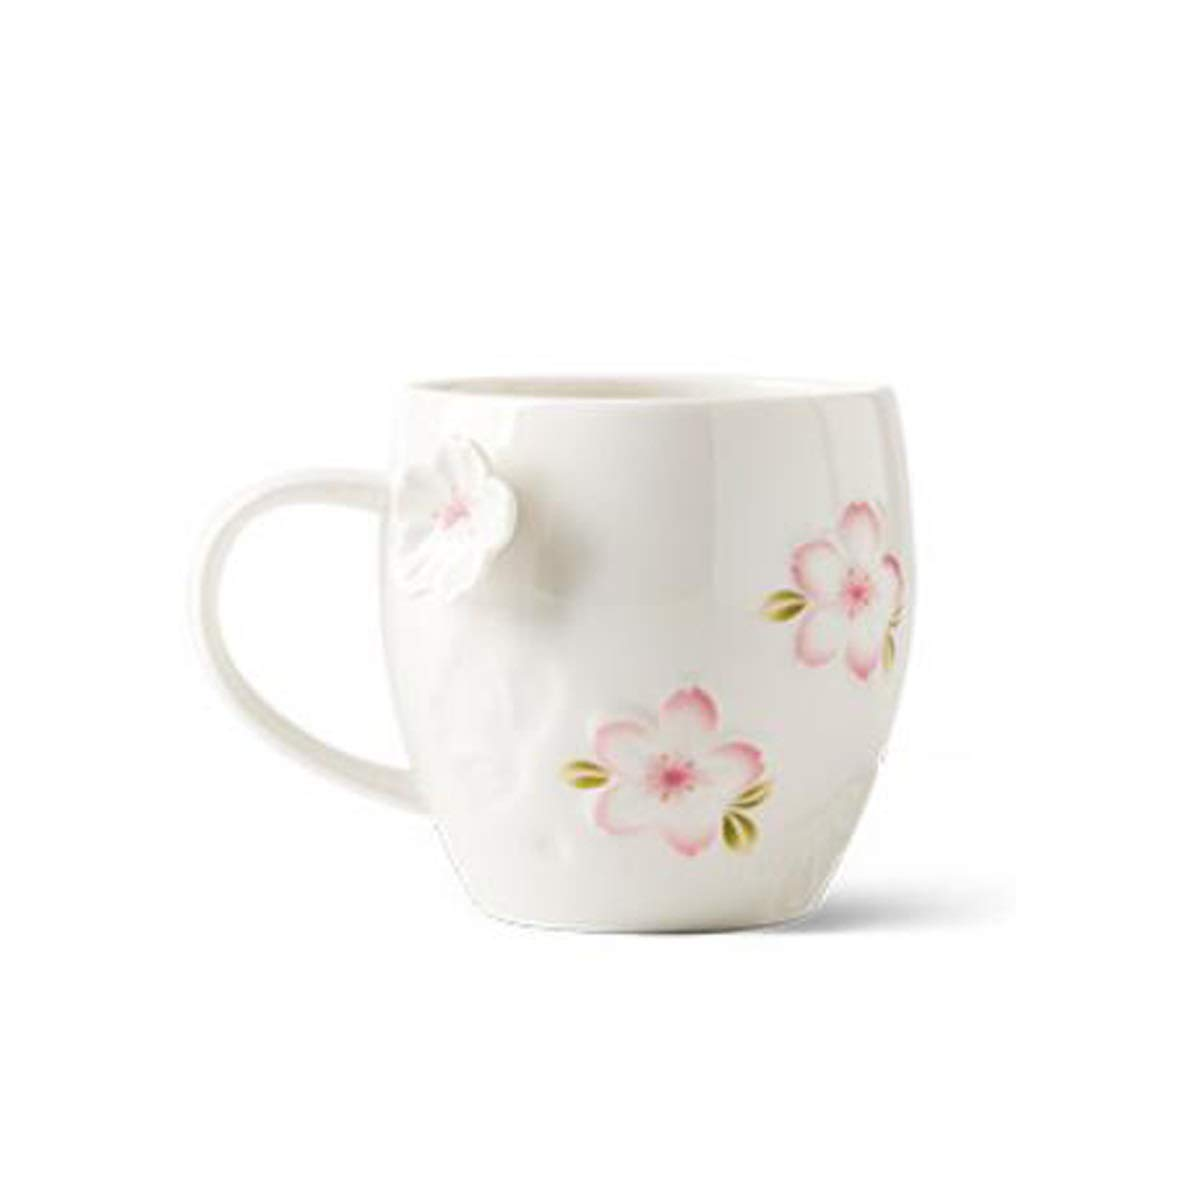 SHENGSHIHUIZHONG Creative Still Flower Mug, with Lid Spoon Couple Stereo Water Cup, Ceramic Cup, Simple Milk Coffee Cup, Pink Coffee Cup, (Color : White)